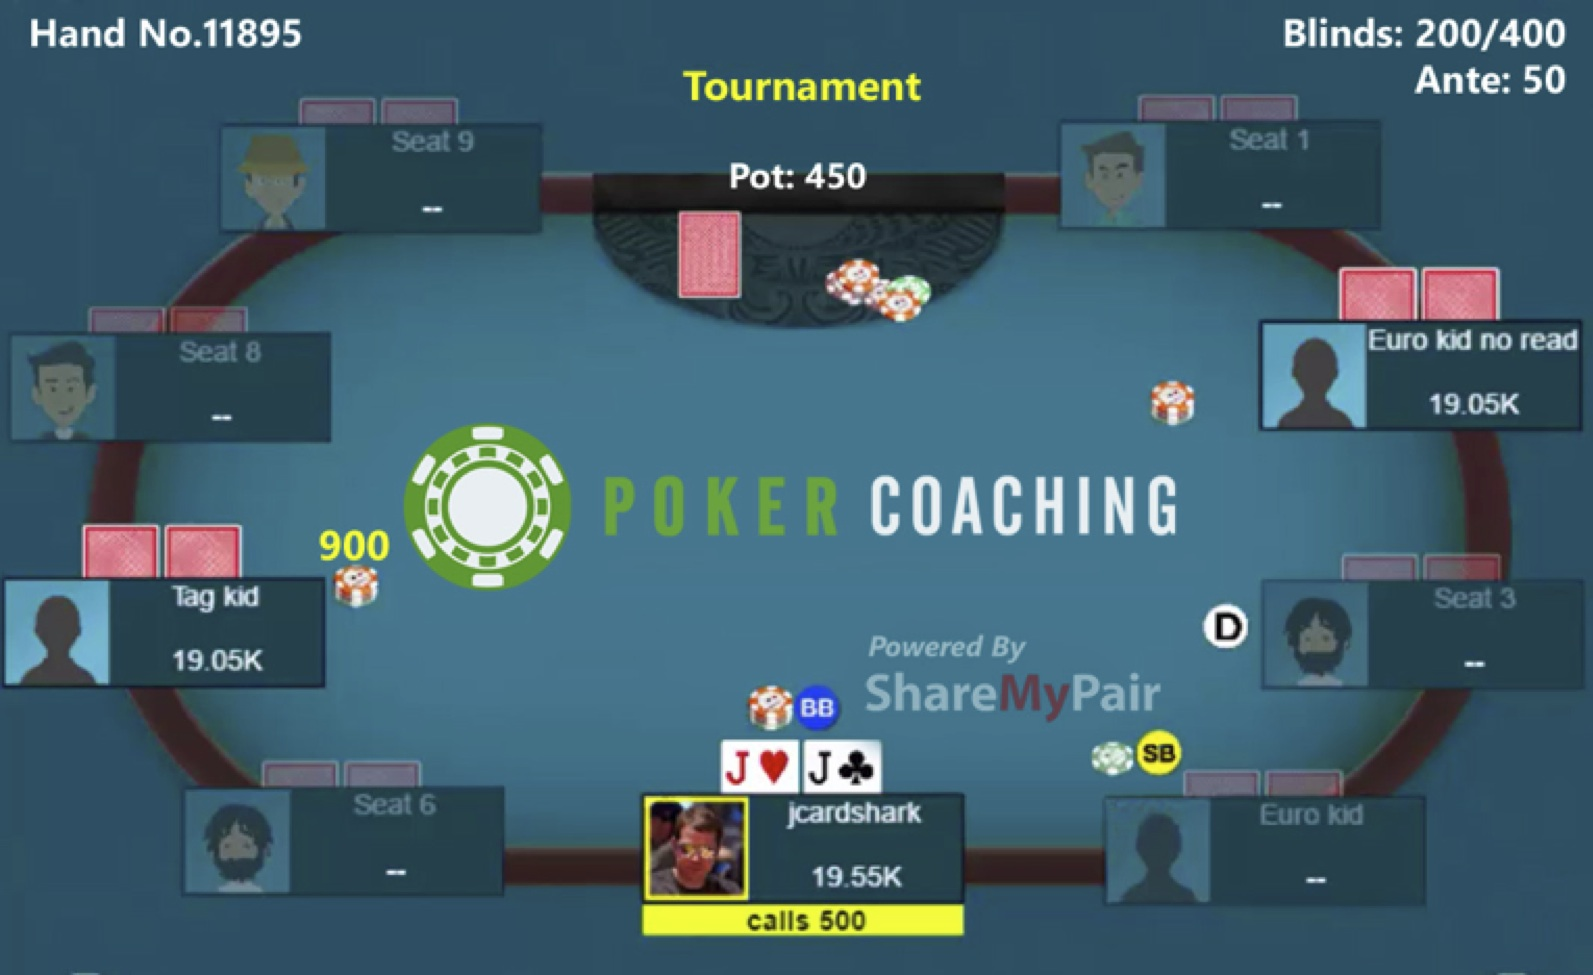 Poker Coaching with Jonathan Little: Playing Pocket Jacks 101